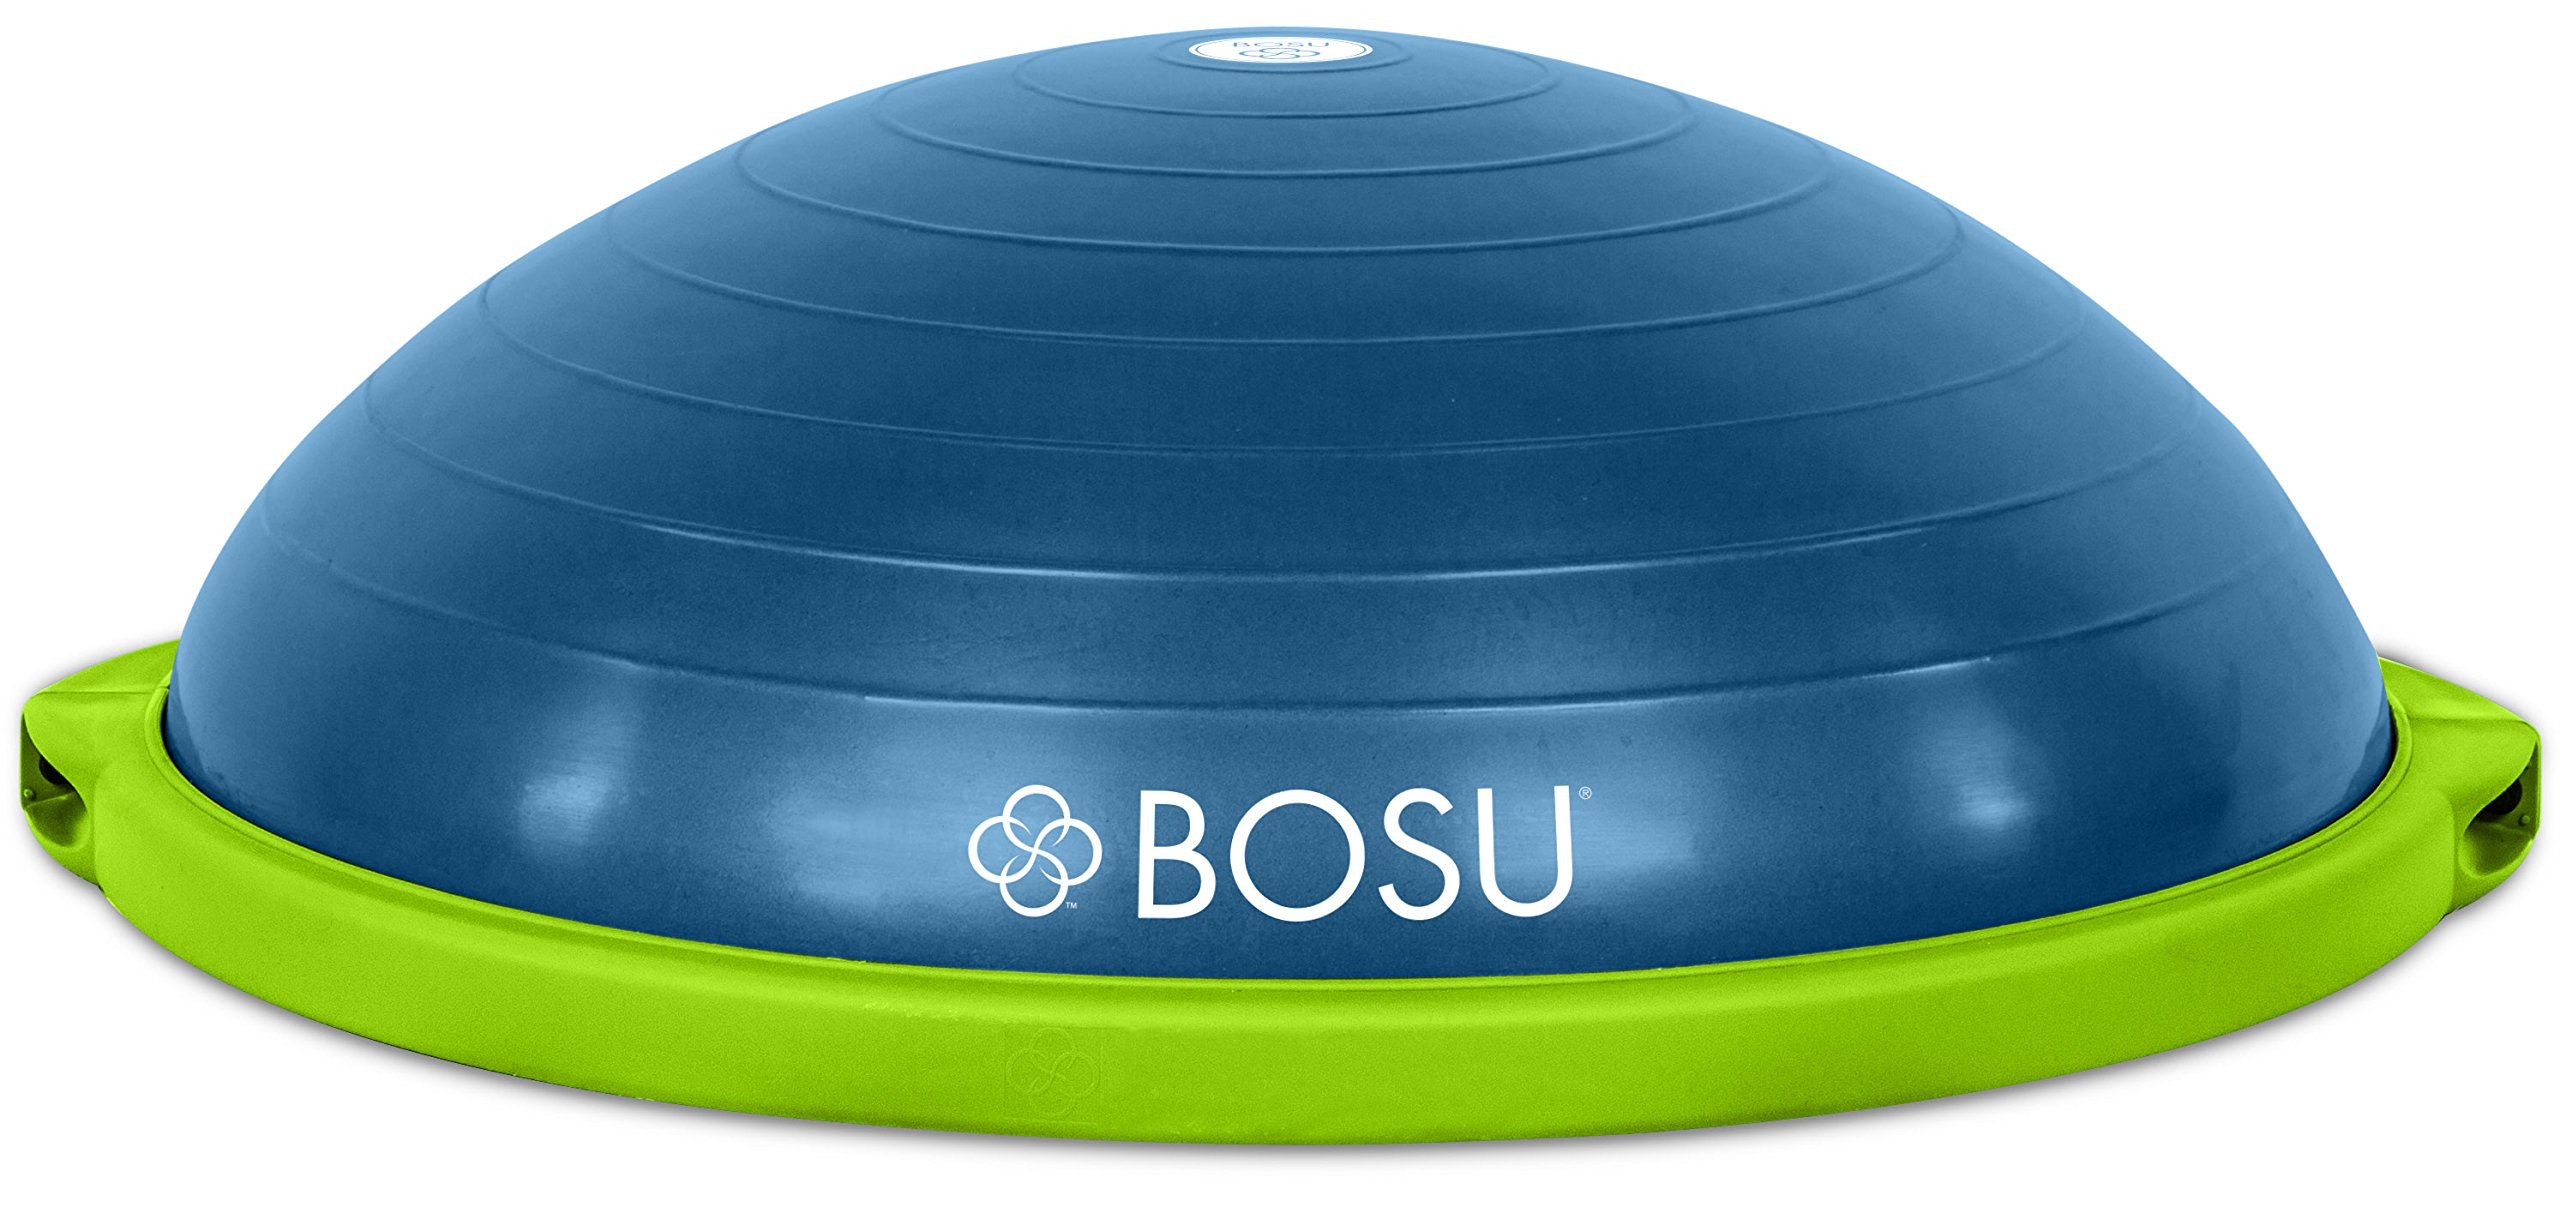 Bosu Balance Trainer, 65cm The Original - Blue/Green